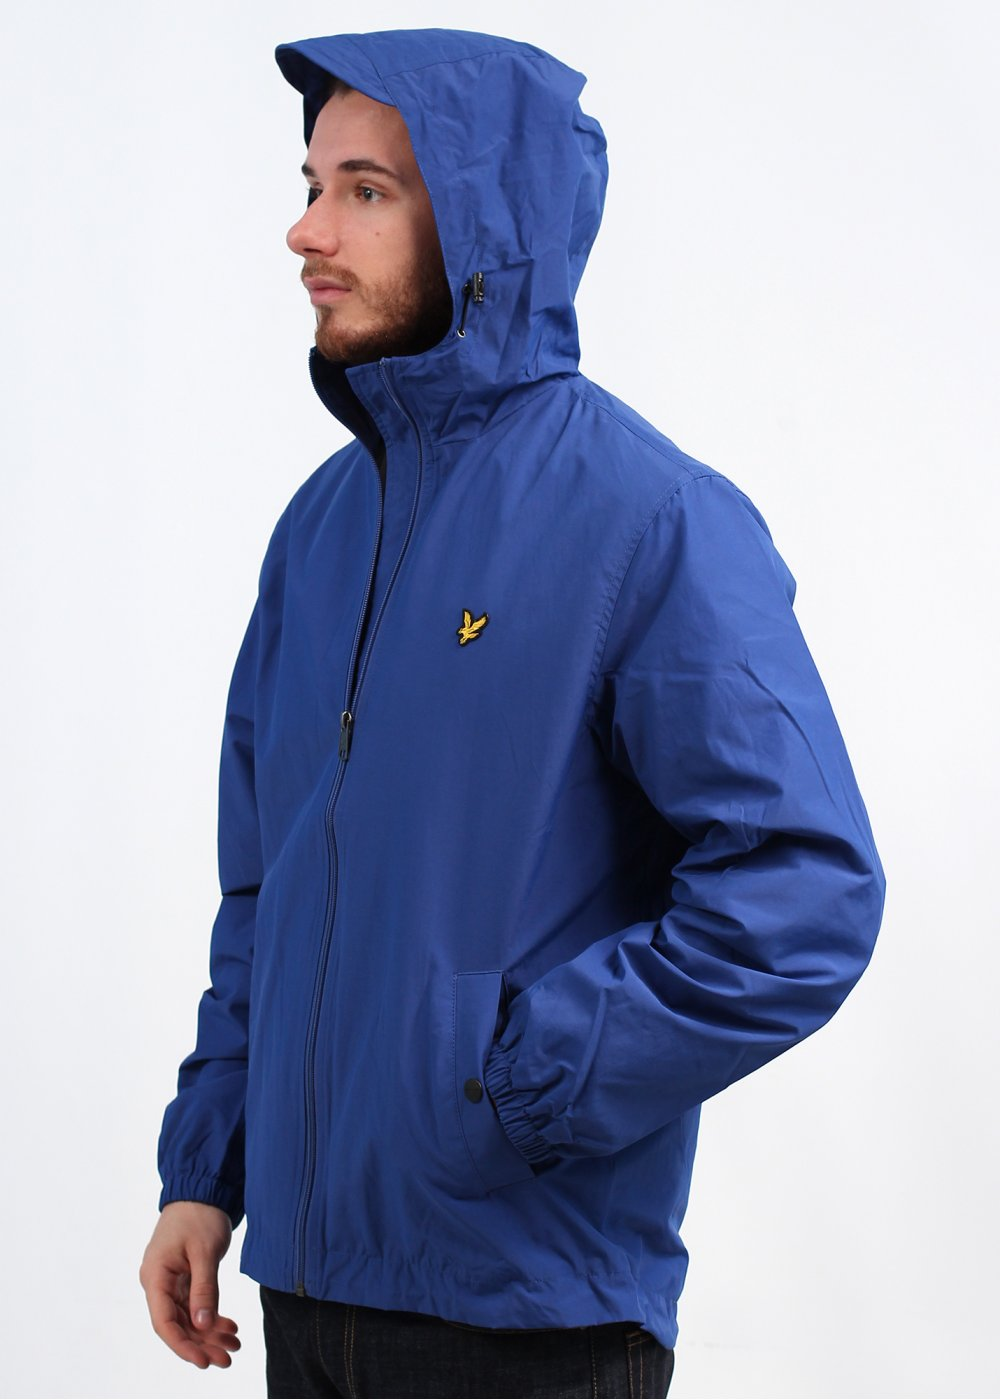 lyle scott vintage zip hooded jacket shallow end blue. Black Bedroom Furniture Sets. Home Design Ideas